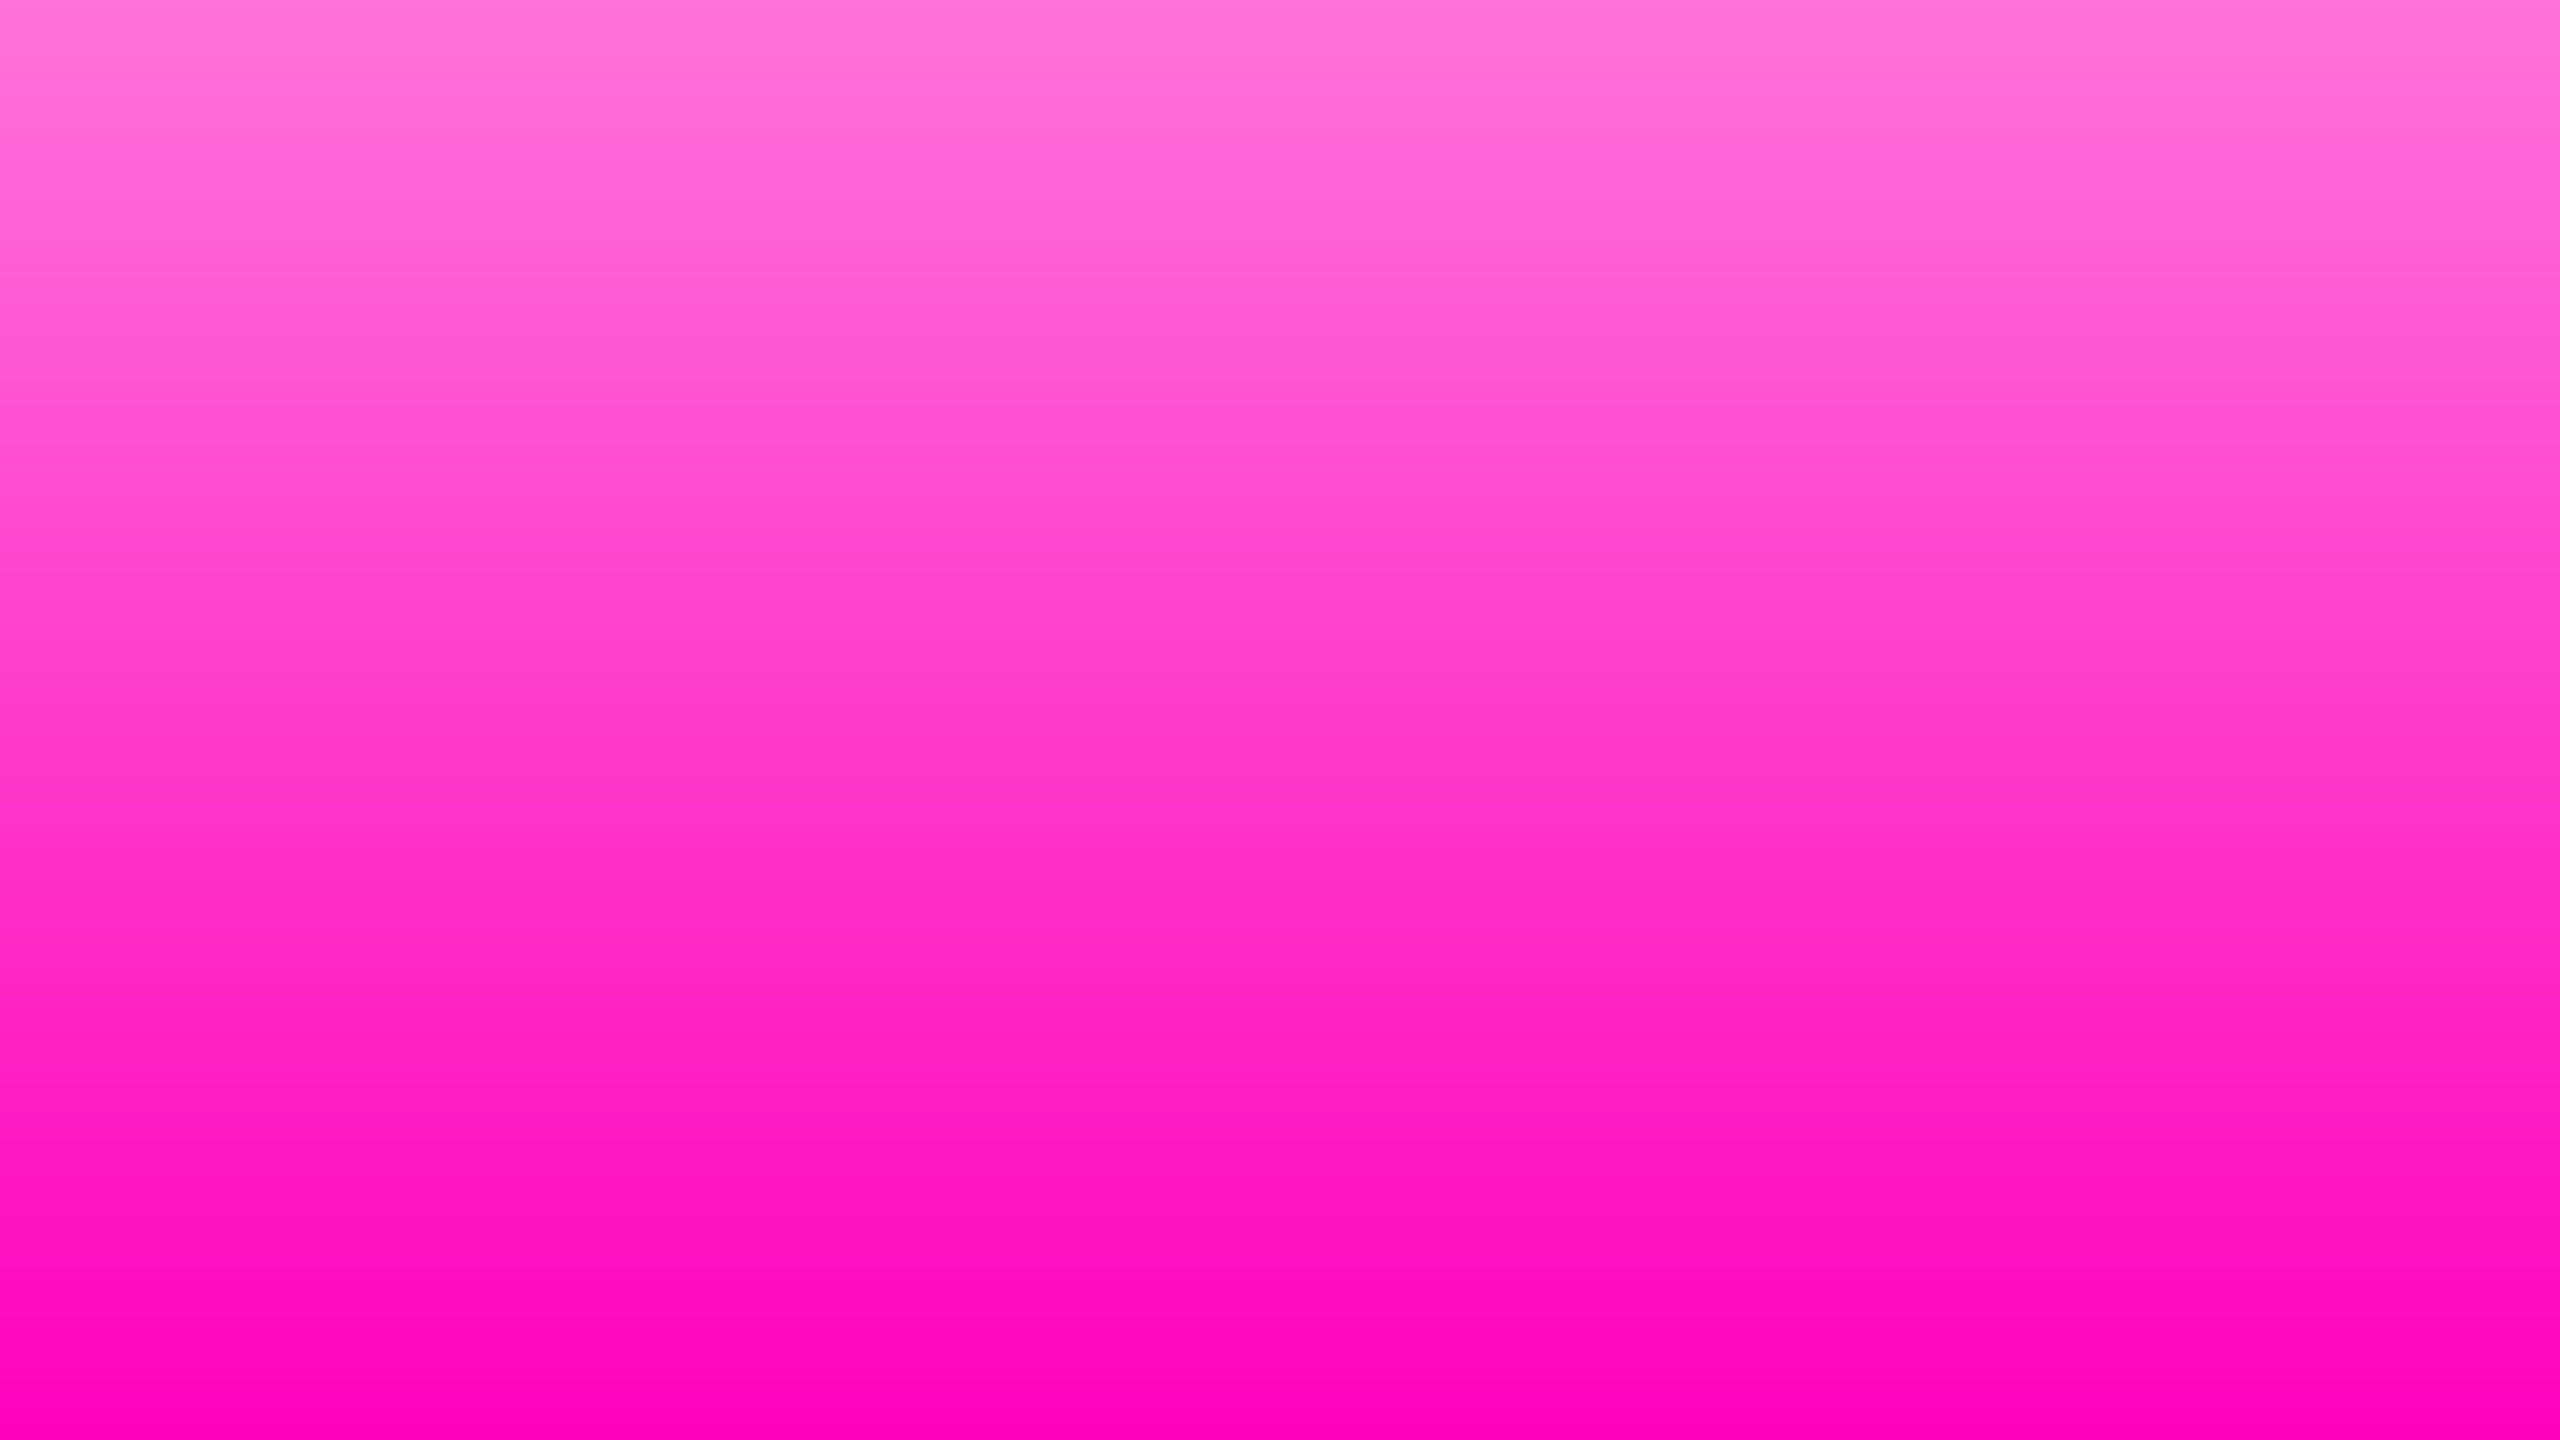 awesome_pink_gradient.png